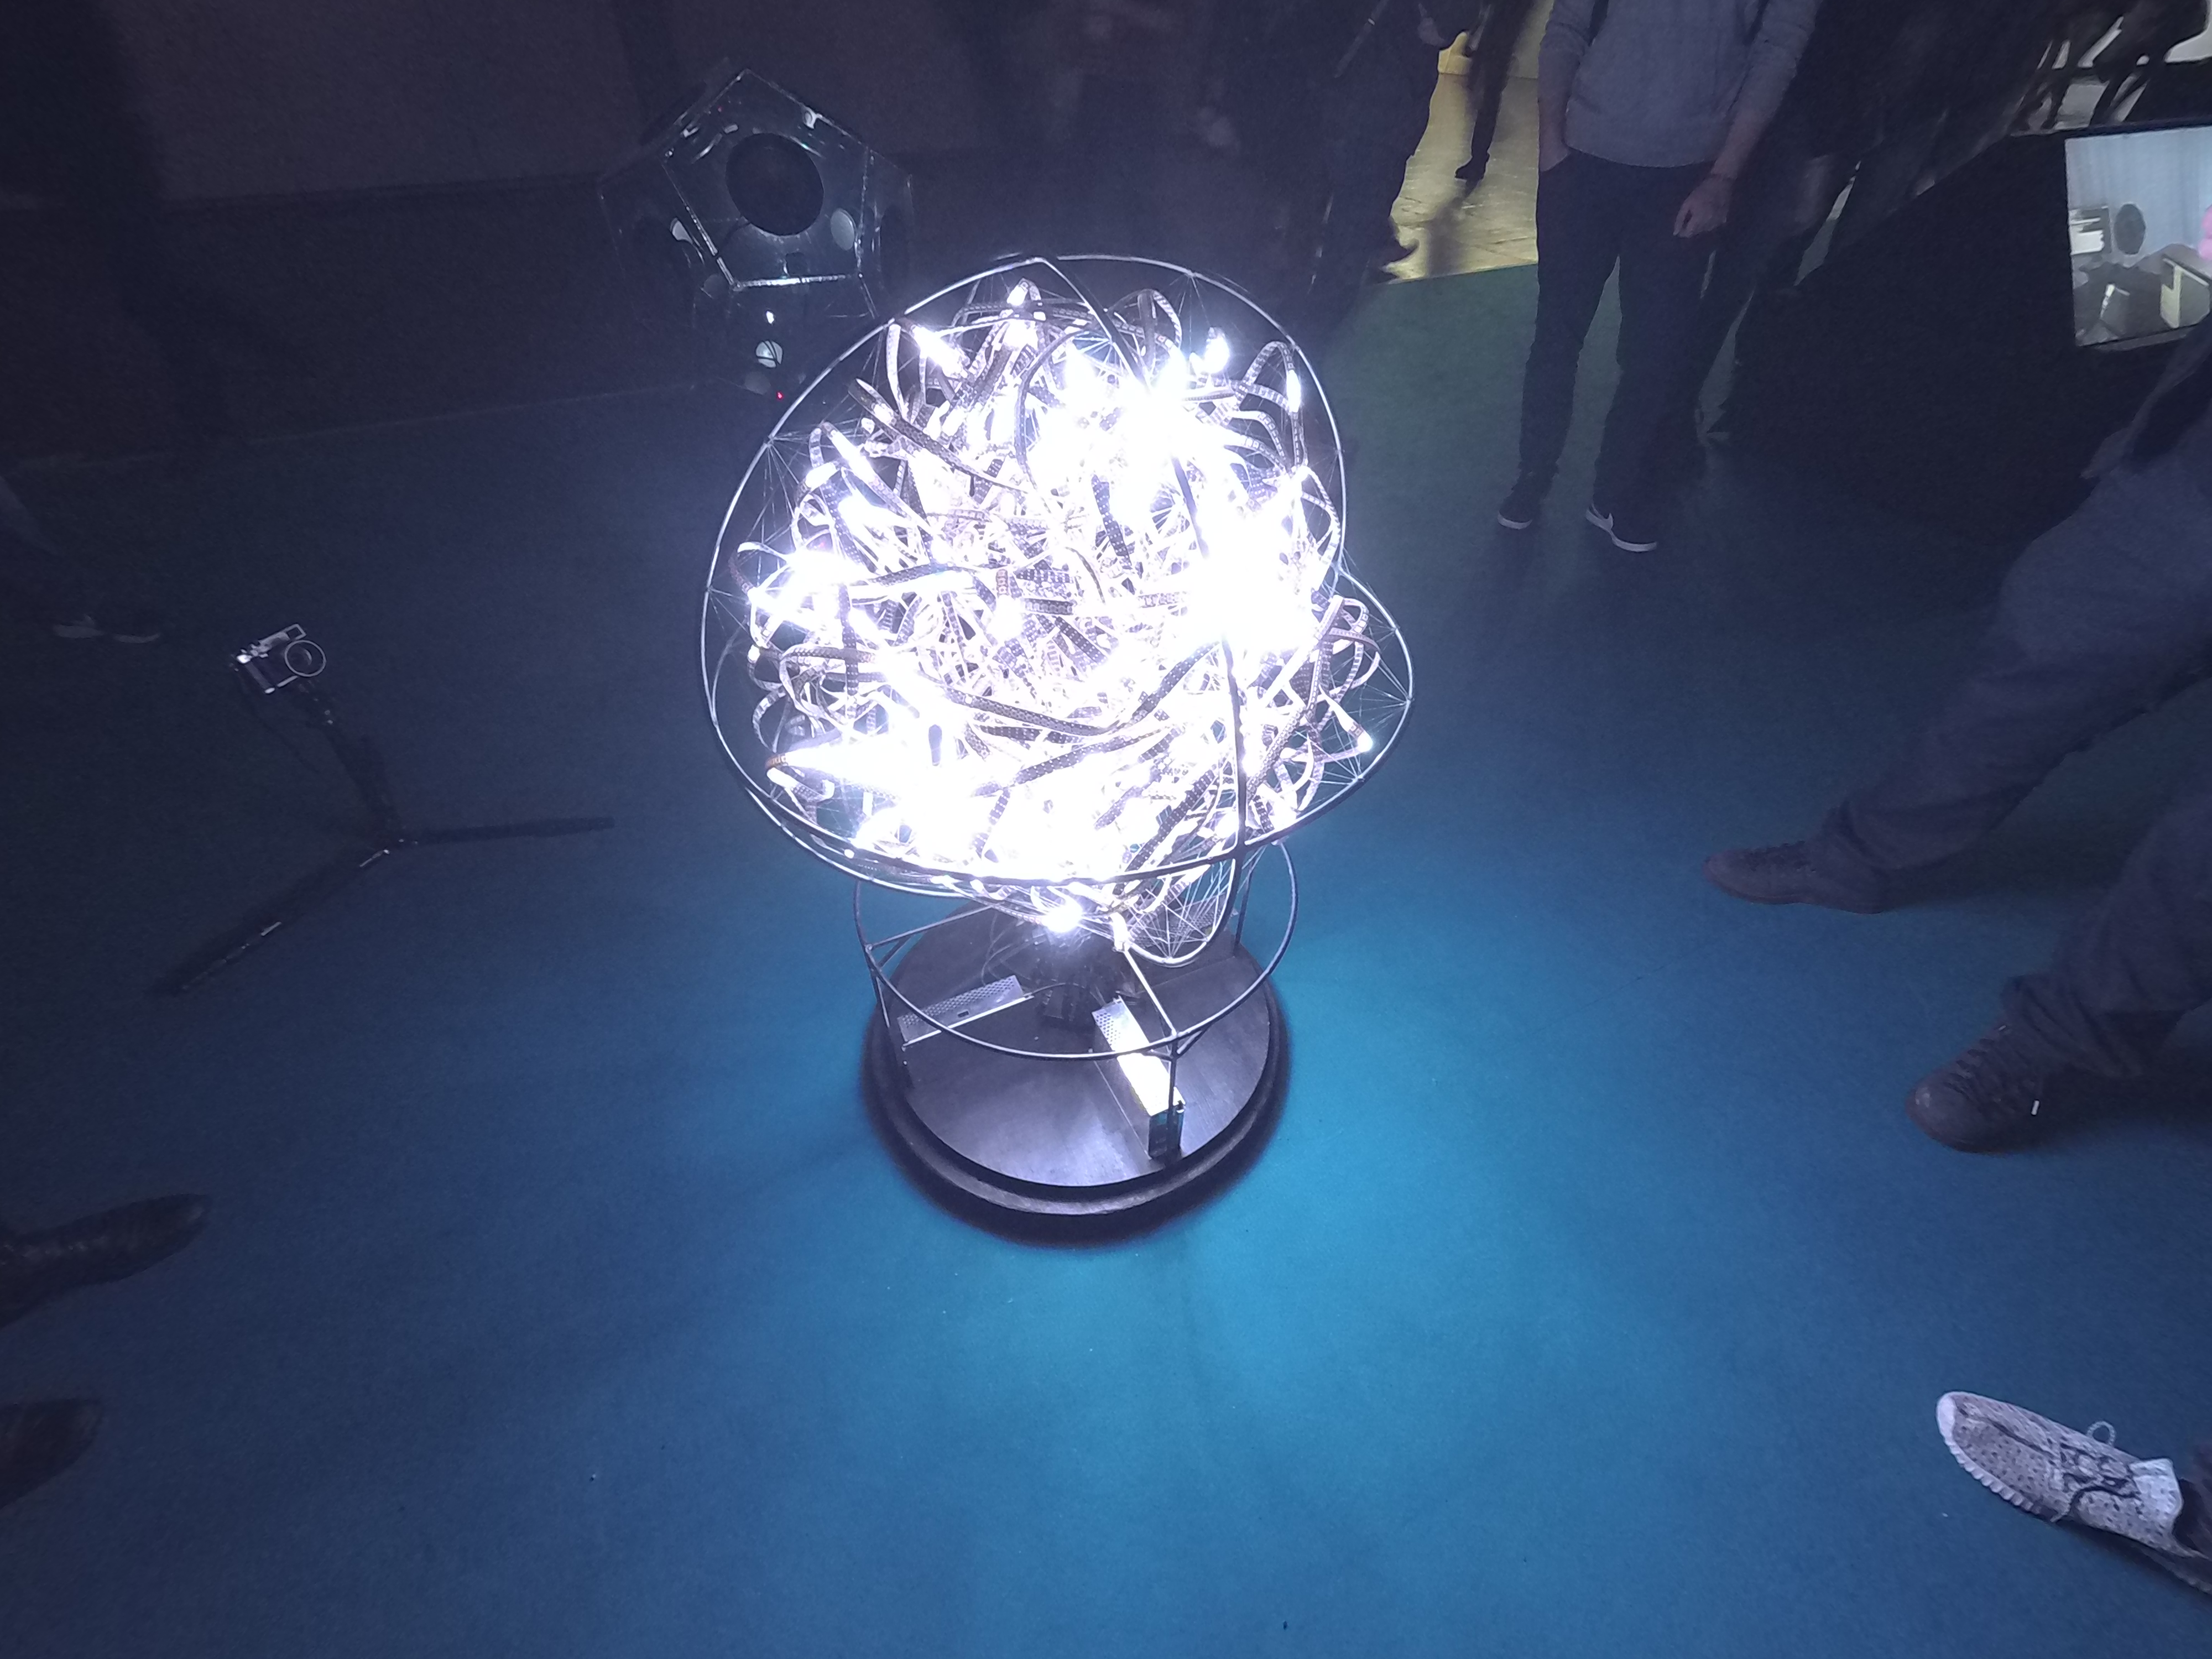 Light sculpture in art and play area